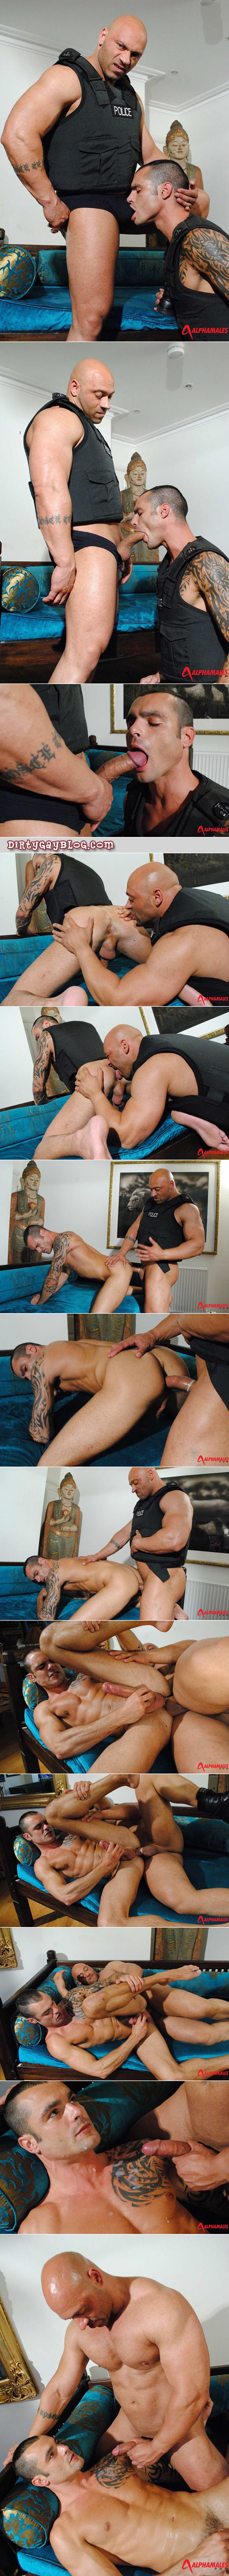 Bodybuilder cop fucks his heavily tattooed police partner with his thick, uncut cock.